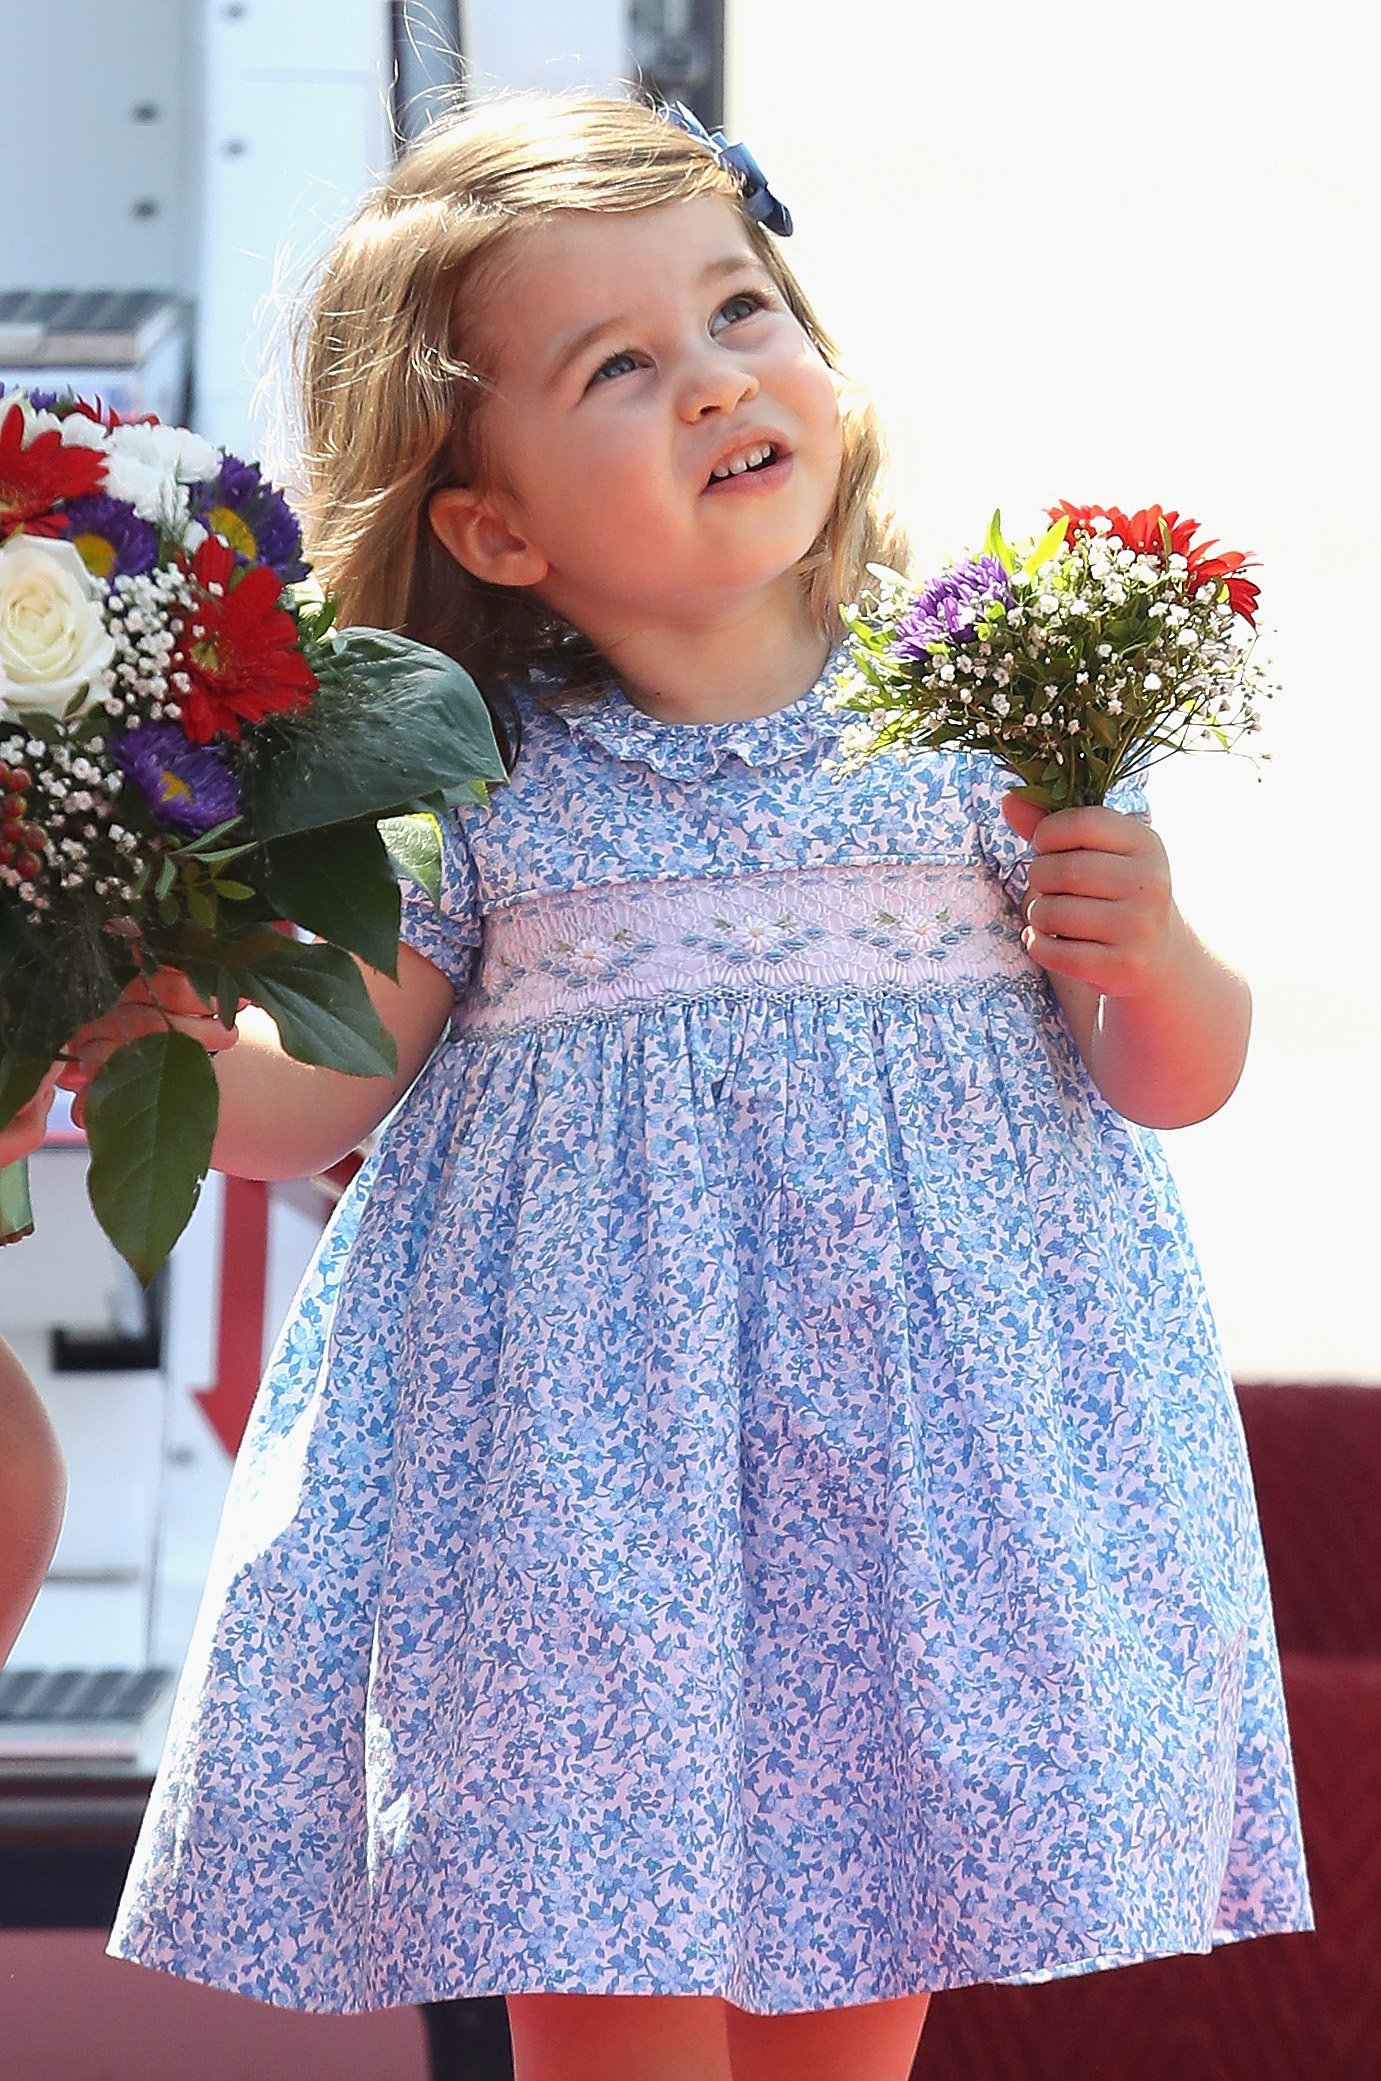 Princess Charlotte of Cambridge l Image: Getty Images